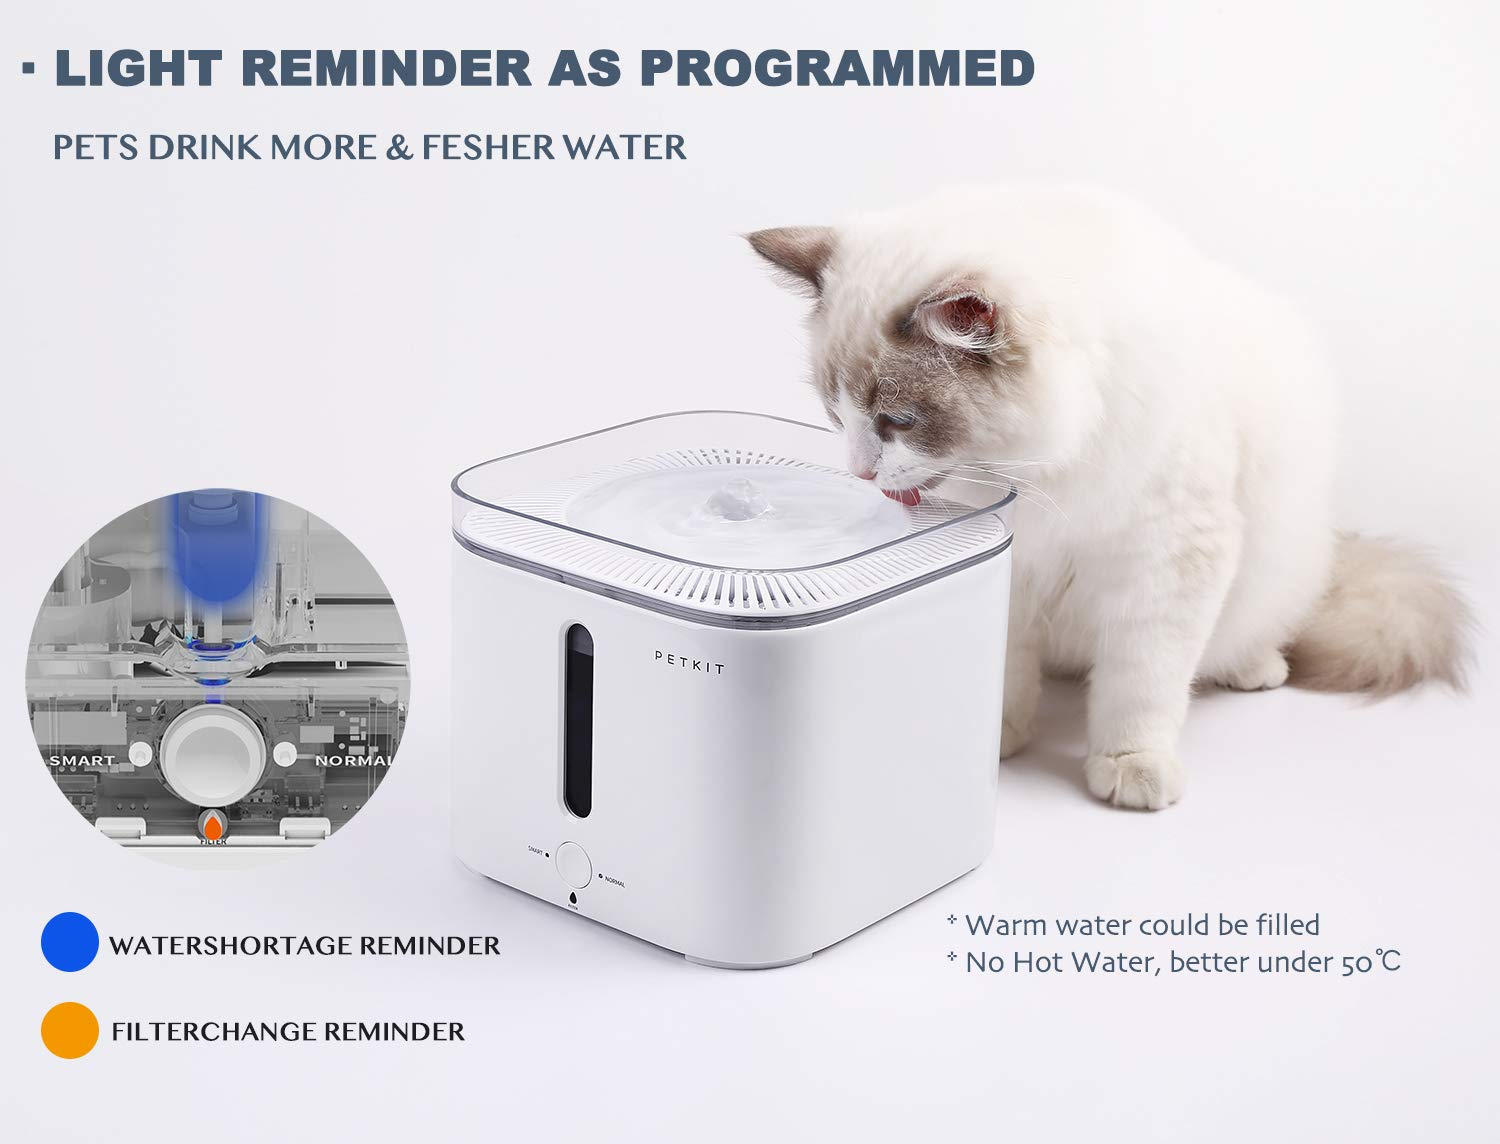 PETKIT EVERSWEET Cat Water Fountain 2.0, 2L Automatic Pet Water Fountain for Dog and Cat Super Quiet with Water-Shortage Alert and Filter-Change Reminder, Auto Power-Off Pet Water Dispenser by PETKIT (Image #5)